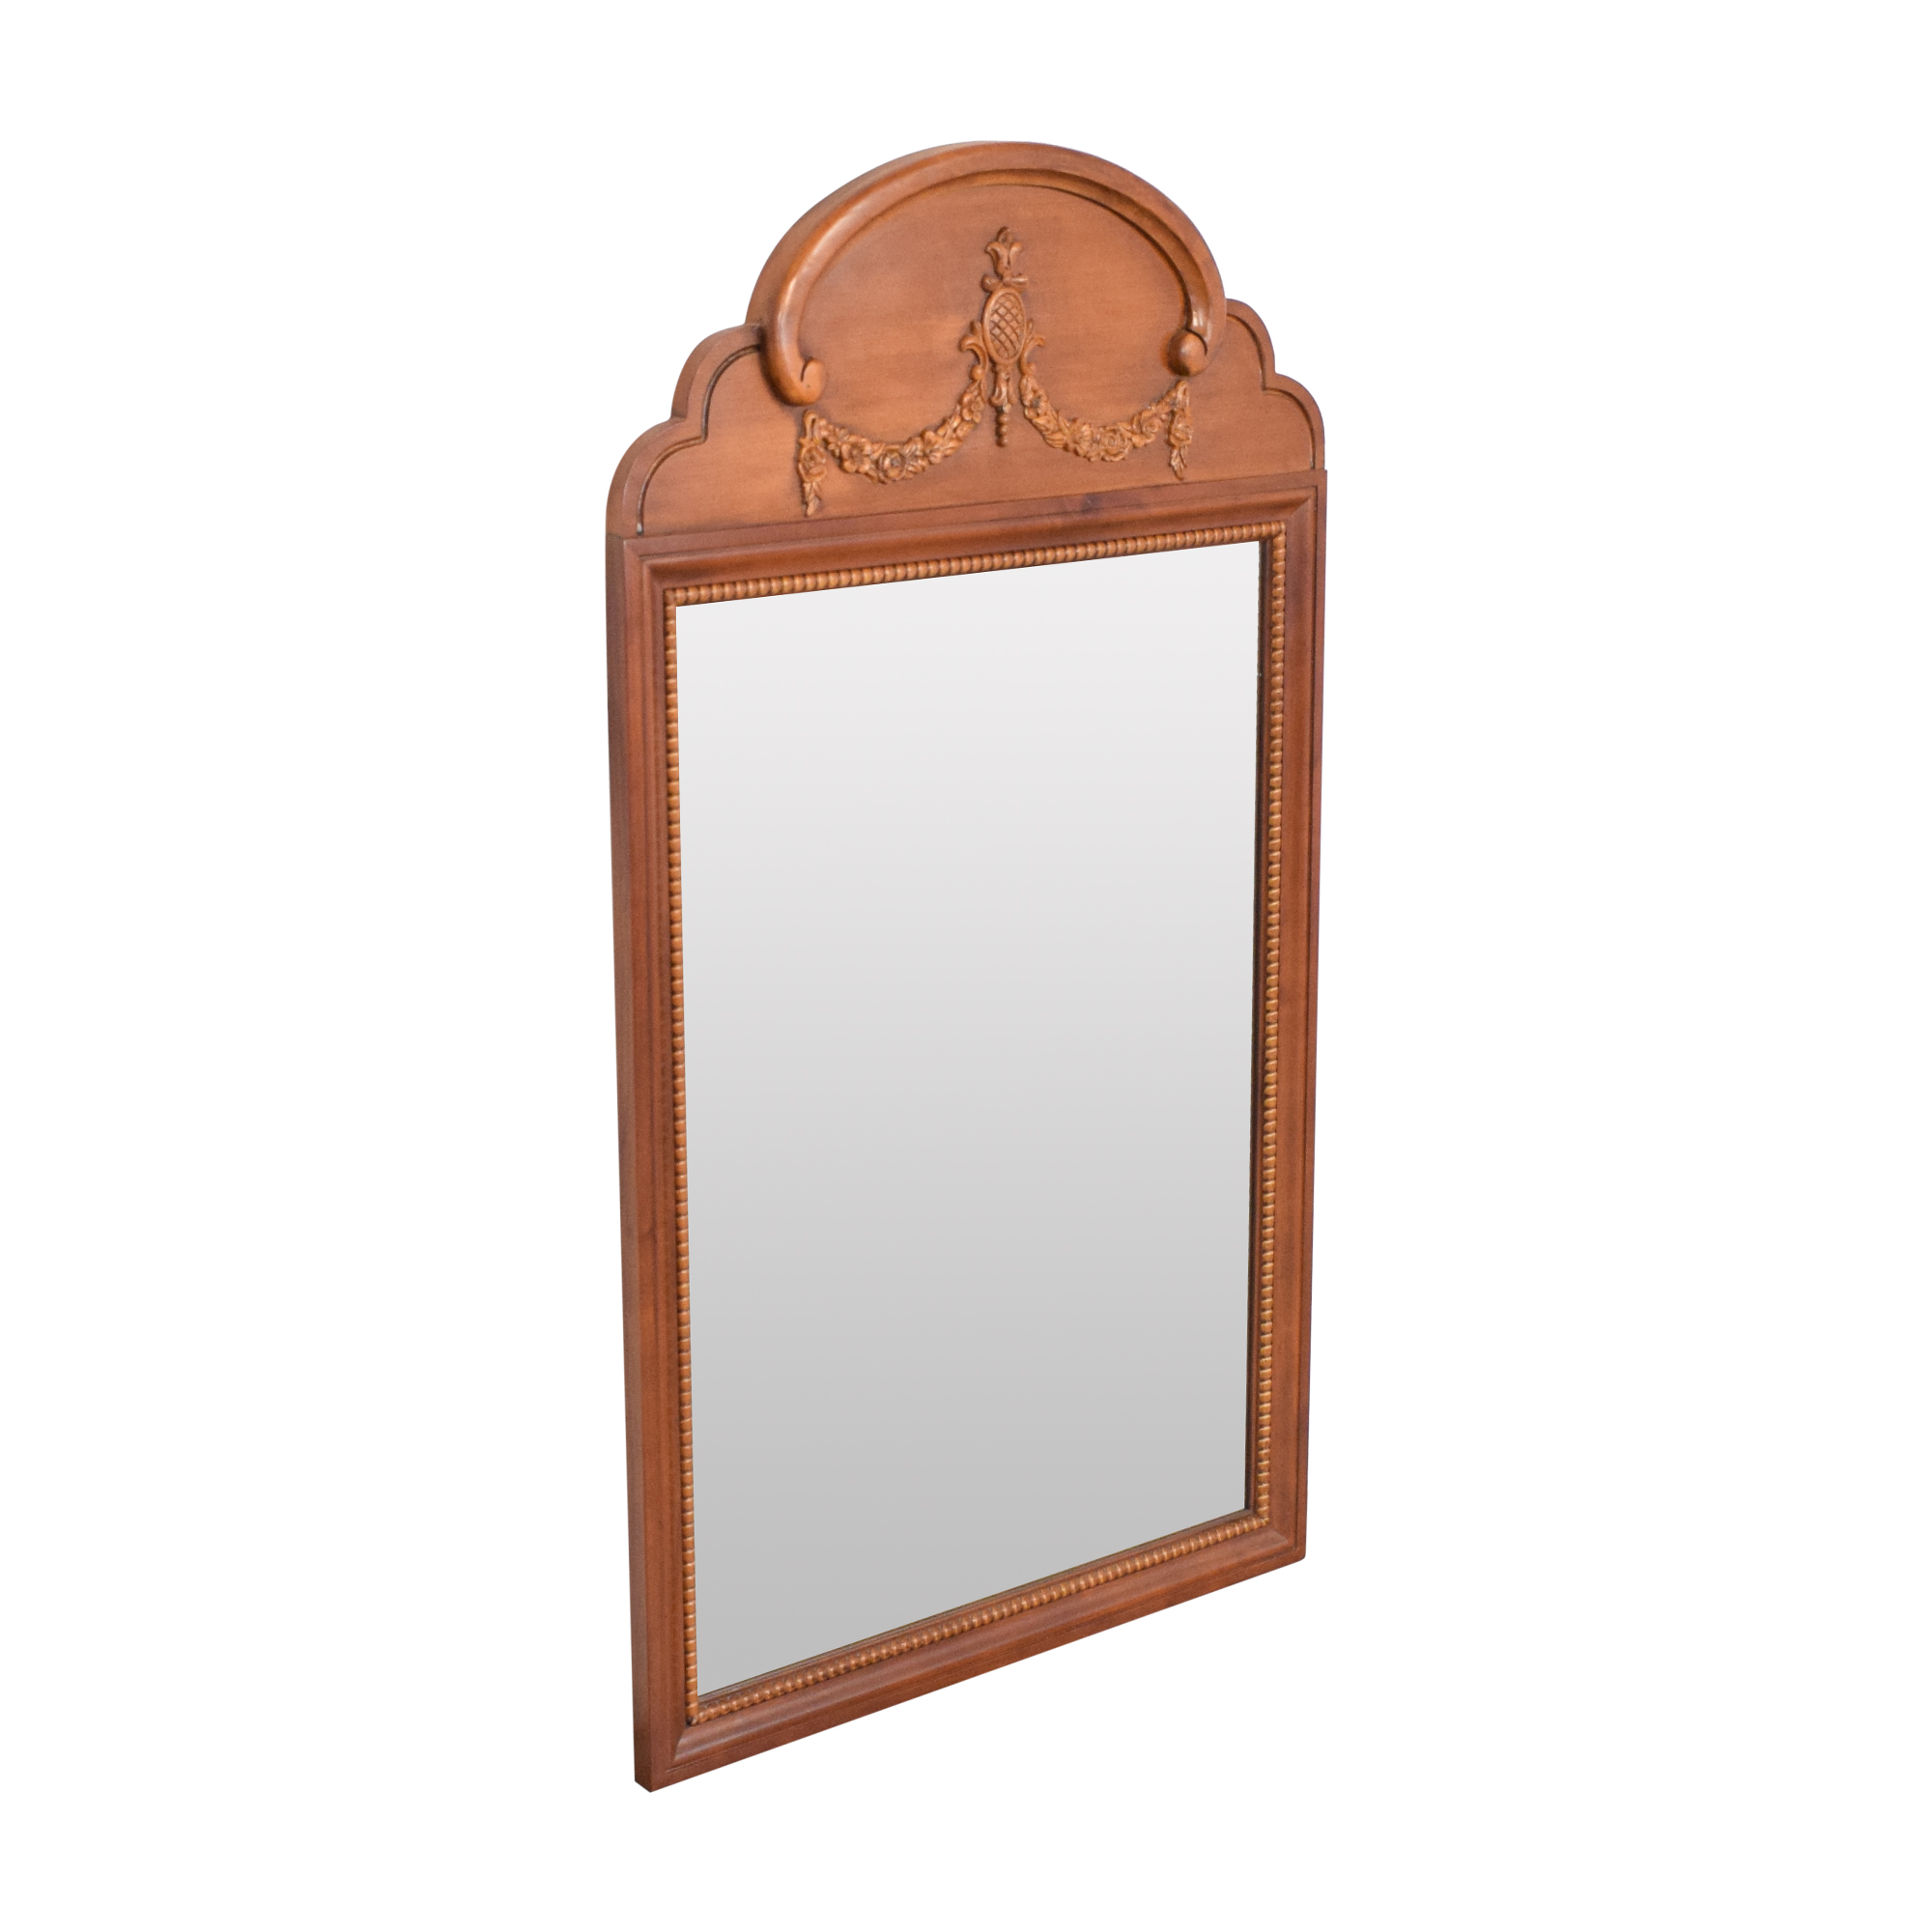 Lexington Furniture Lexington Furniture Wall Mirror dimensions